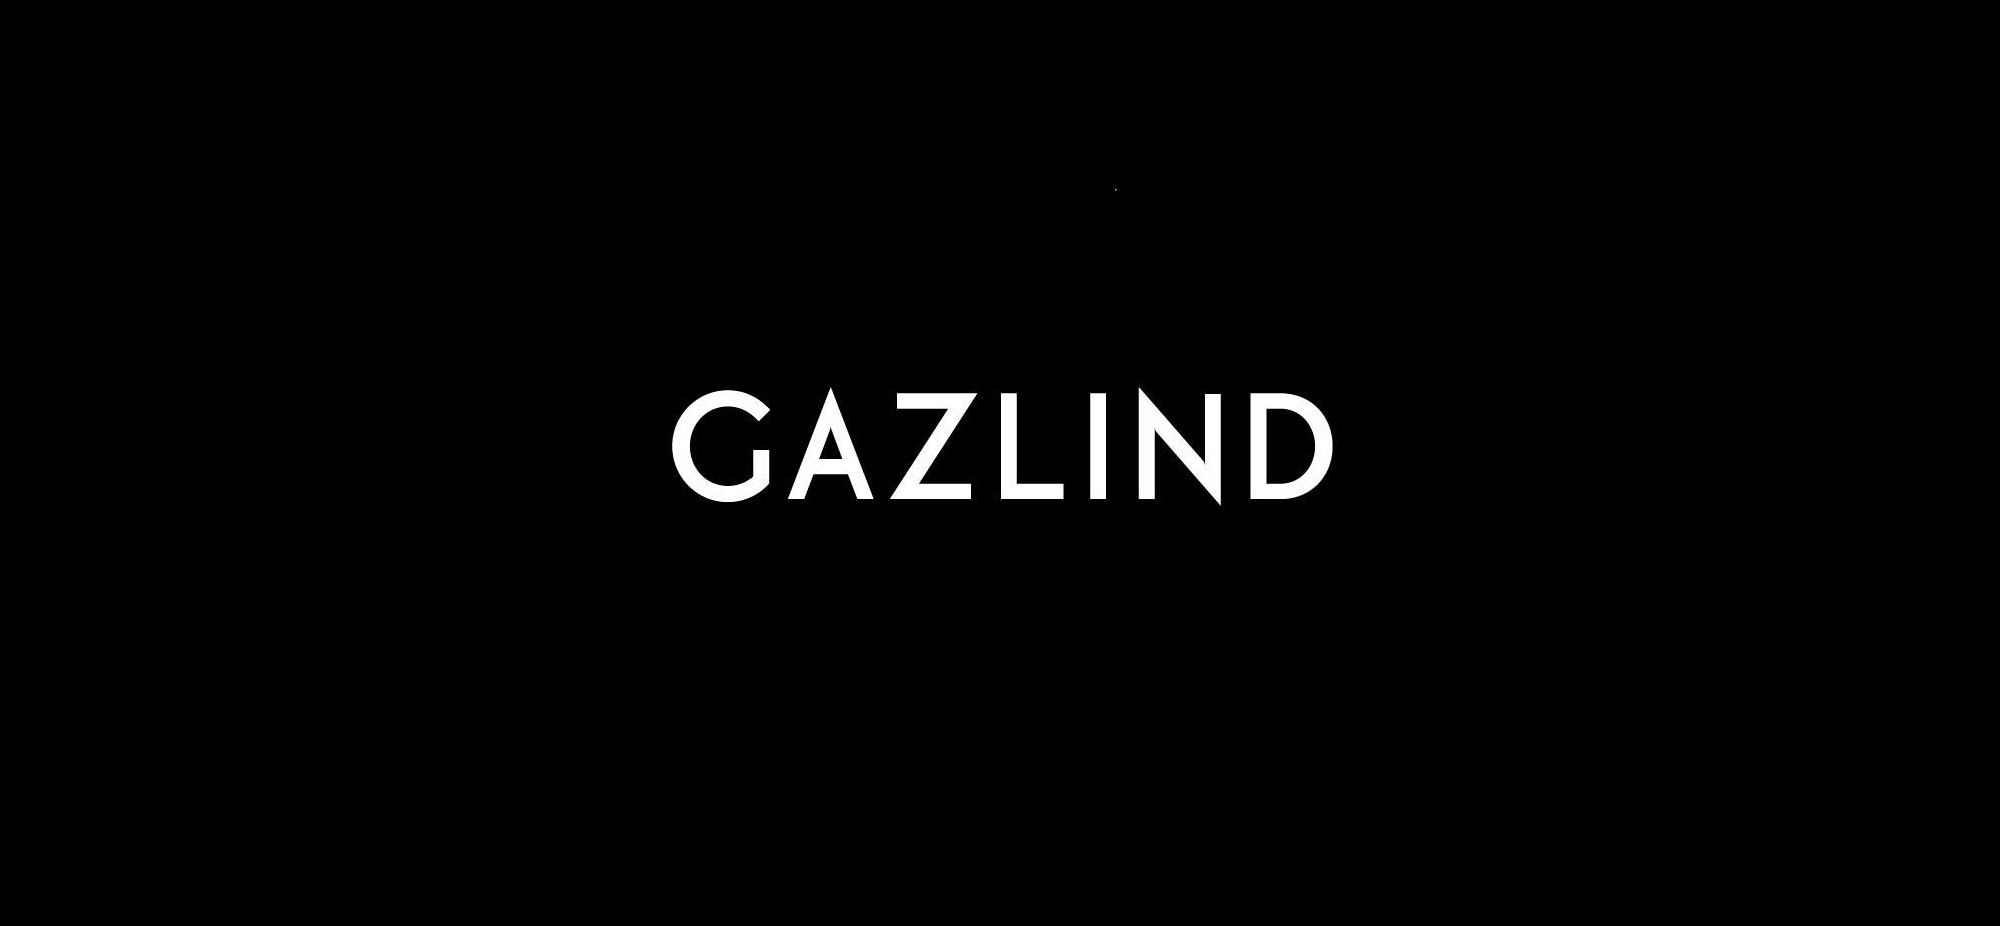 The duo behind Gazlind moniker, Orman & Gustav, will no longer continue their project!